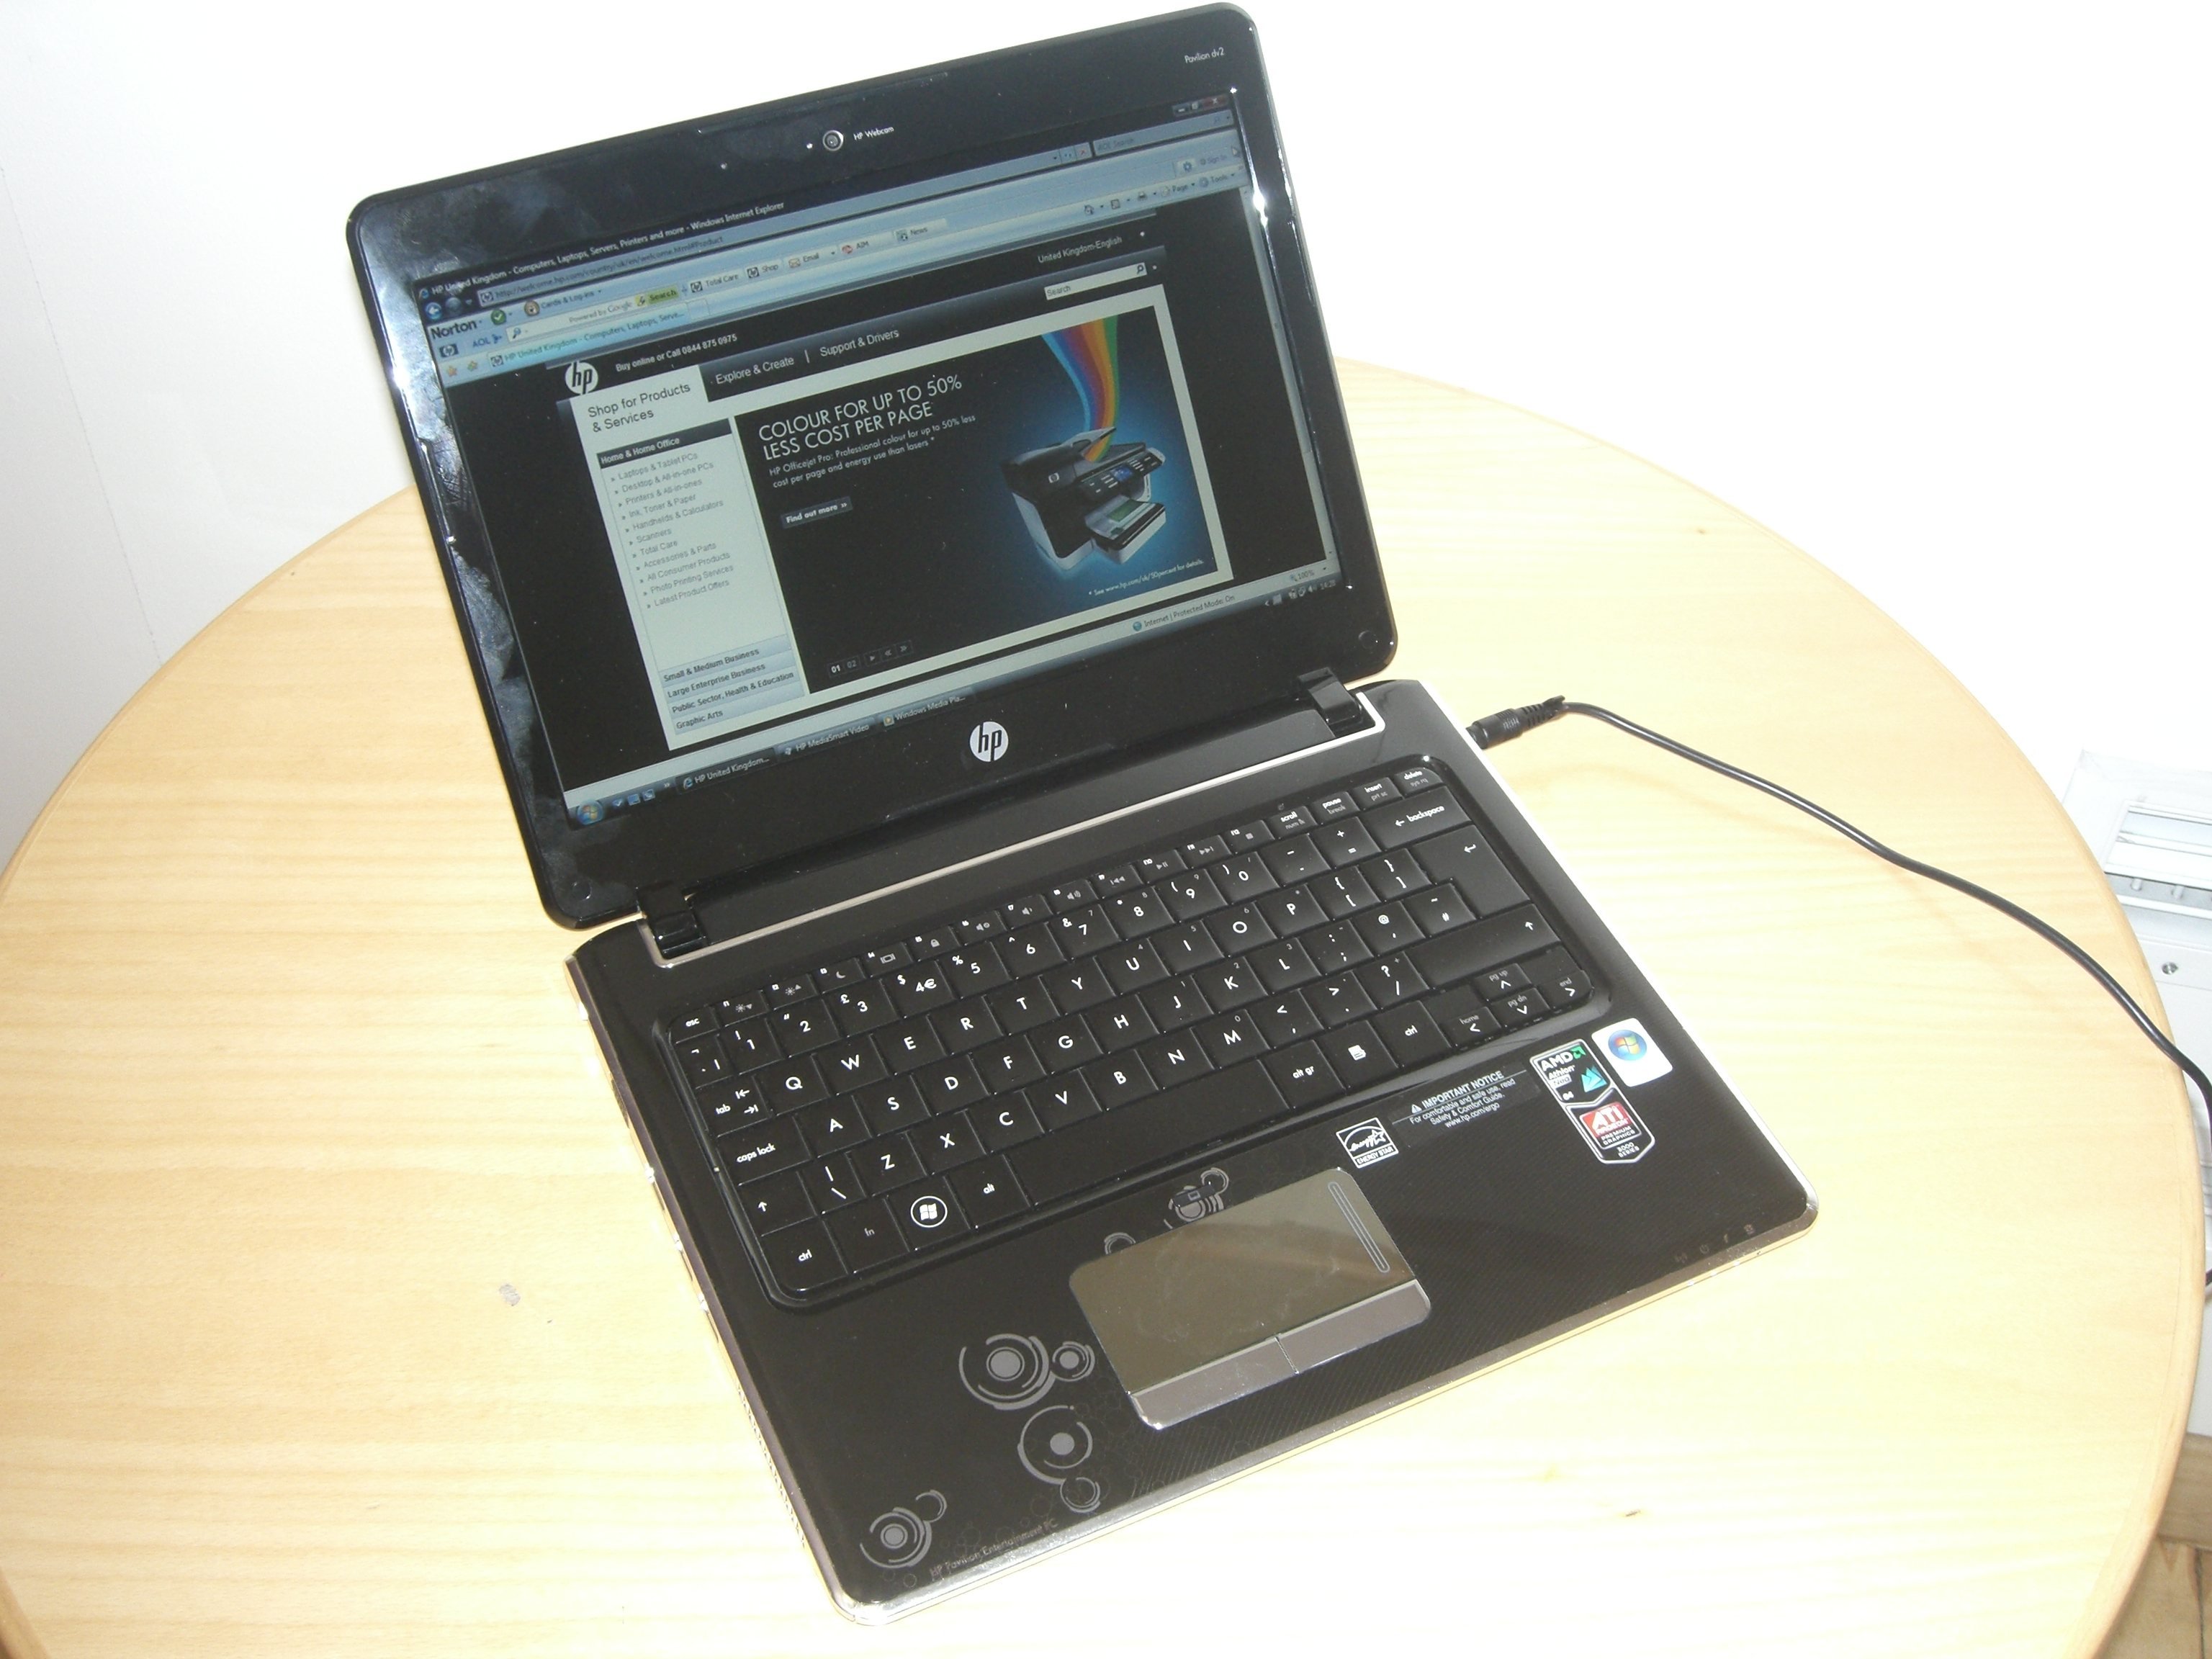 Hands on: HP Pavilion dv2 review